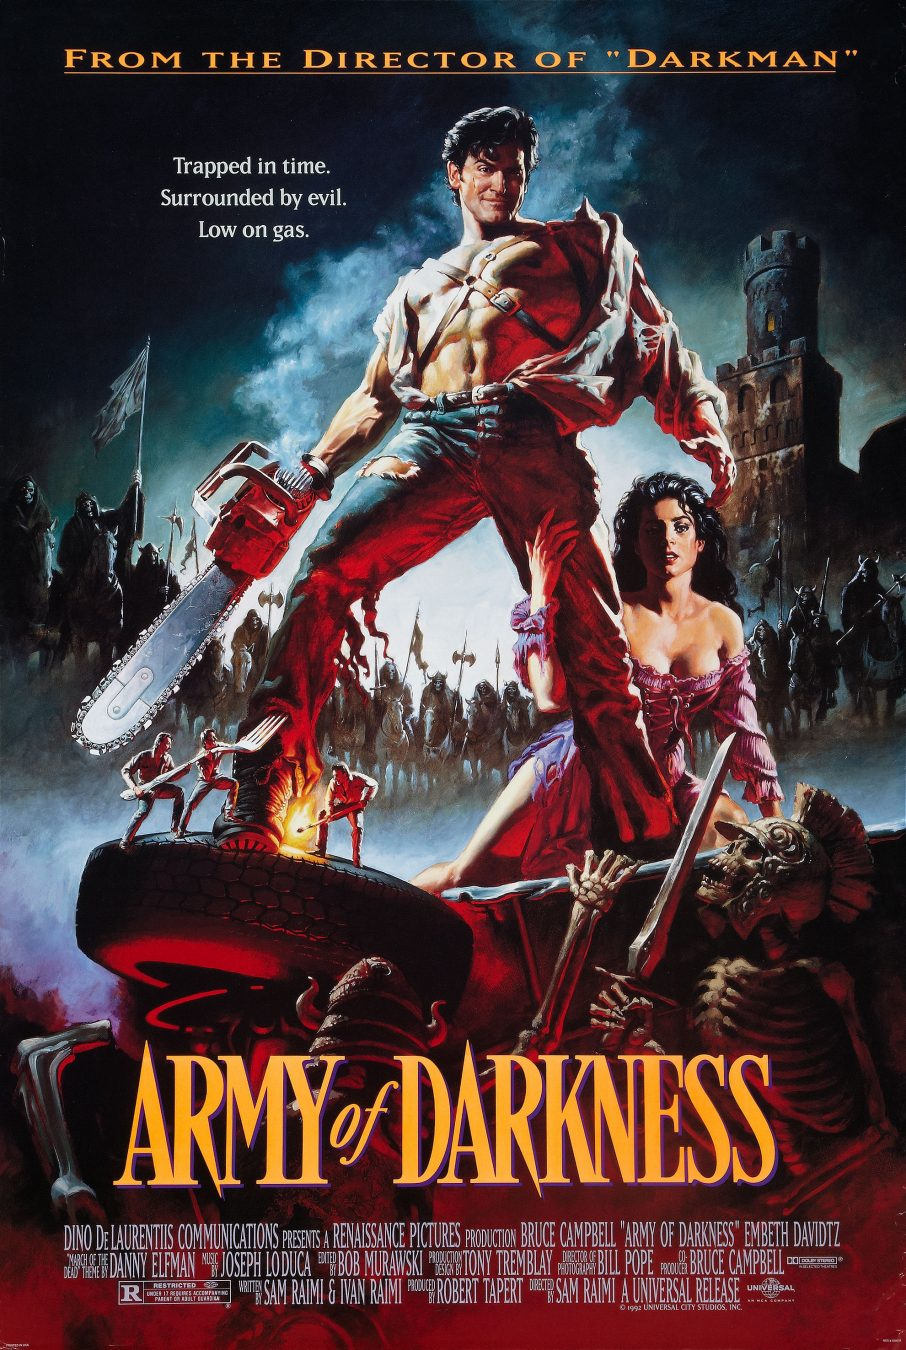 [Terror on The Turntable] Hail to the King: Joseph LoDuca's Epic ARMY OF DARKNESS Score